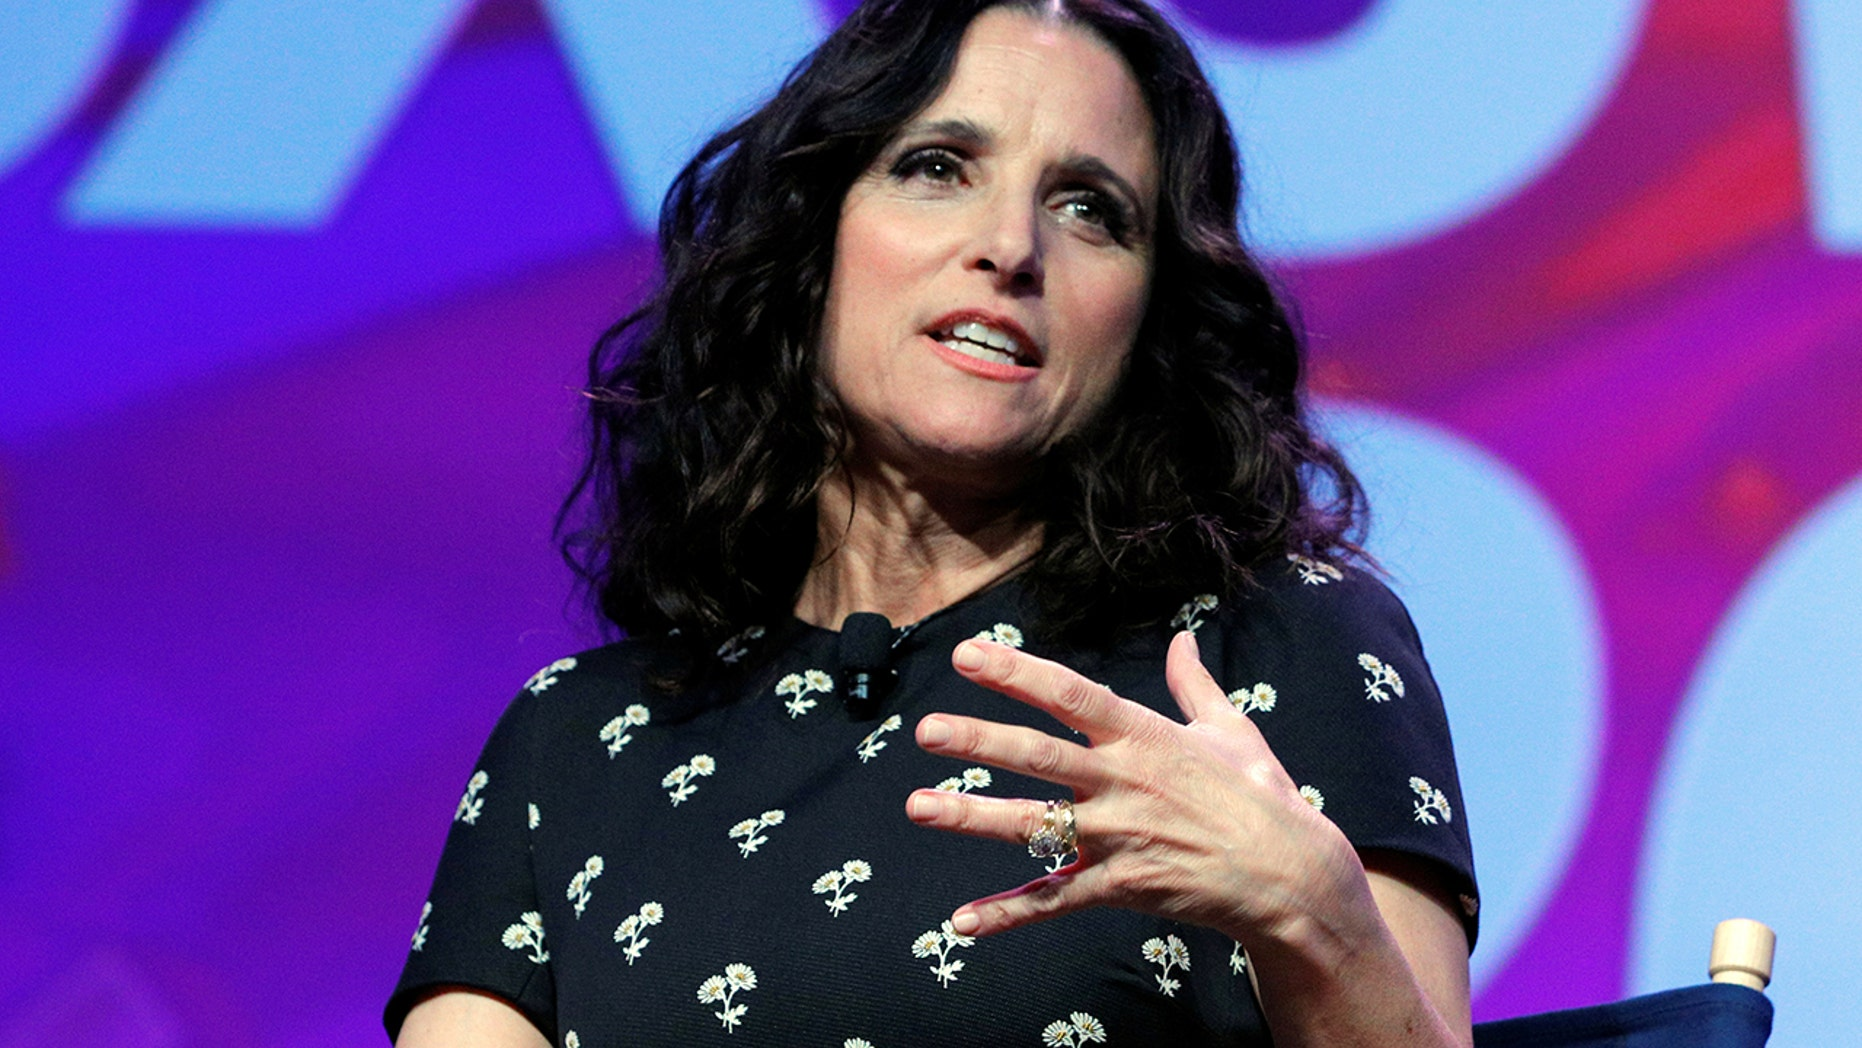 Julia Louis Dreyfus joins the cast and showrunner of the television series Veep for a discussion at the South by Southwest Music Film Interactive Festival 2017 in Austin Texas U.S